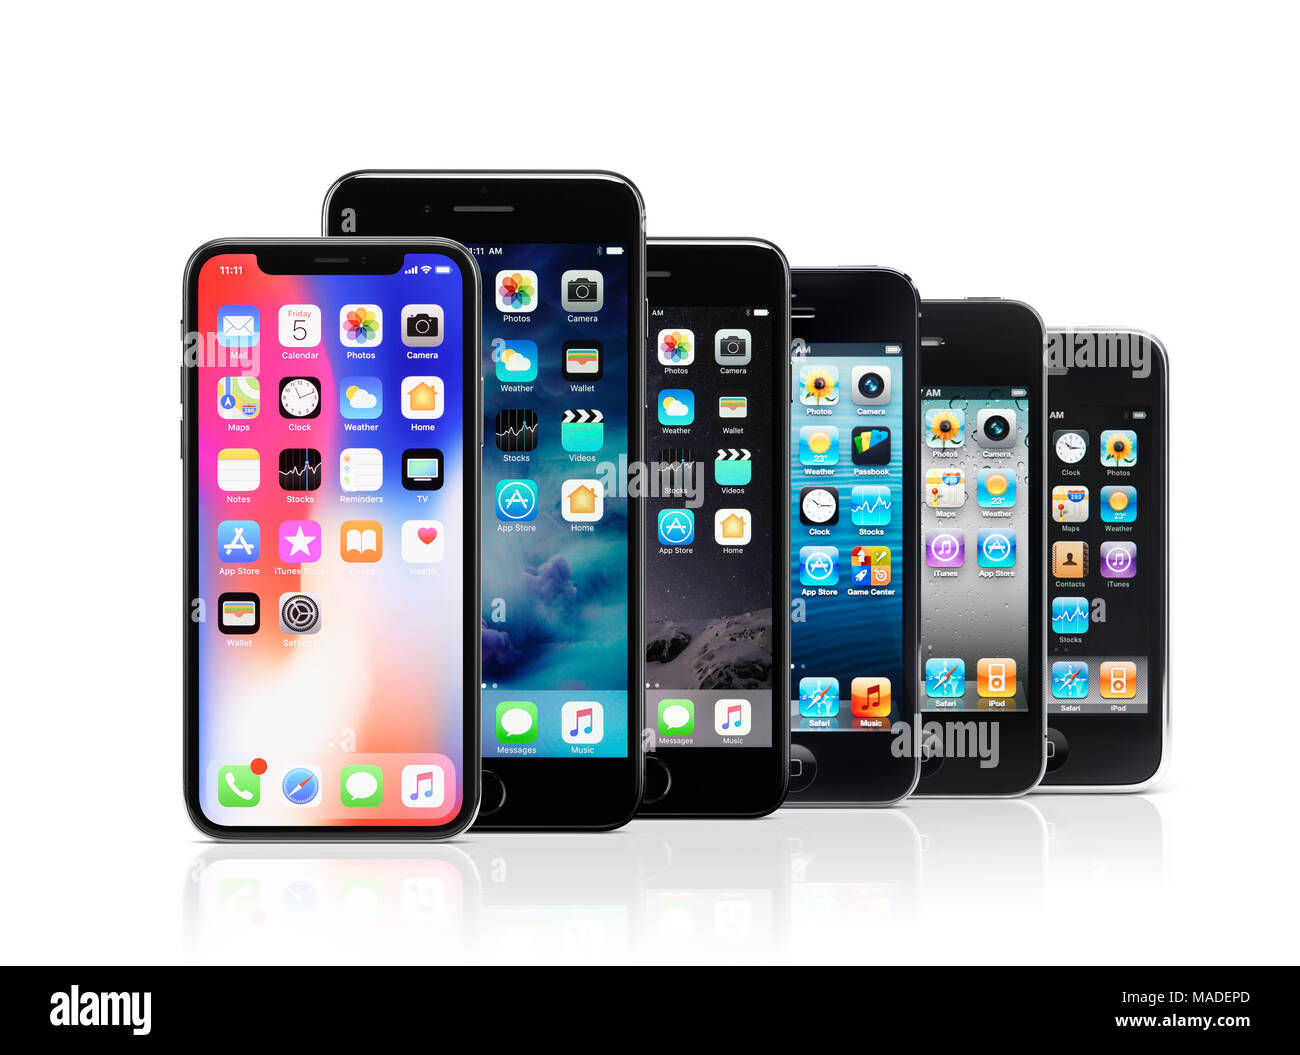 Apple iPhone line-up, iPhone X, 7 plus, 7, 5s, 4, 3, from newer to older models of previous smartphone generations, isolated on white studio backgroun Stock Photo